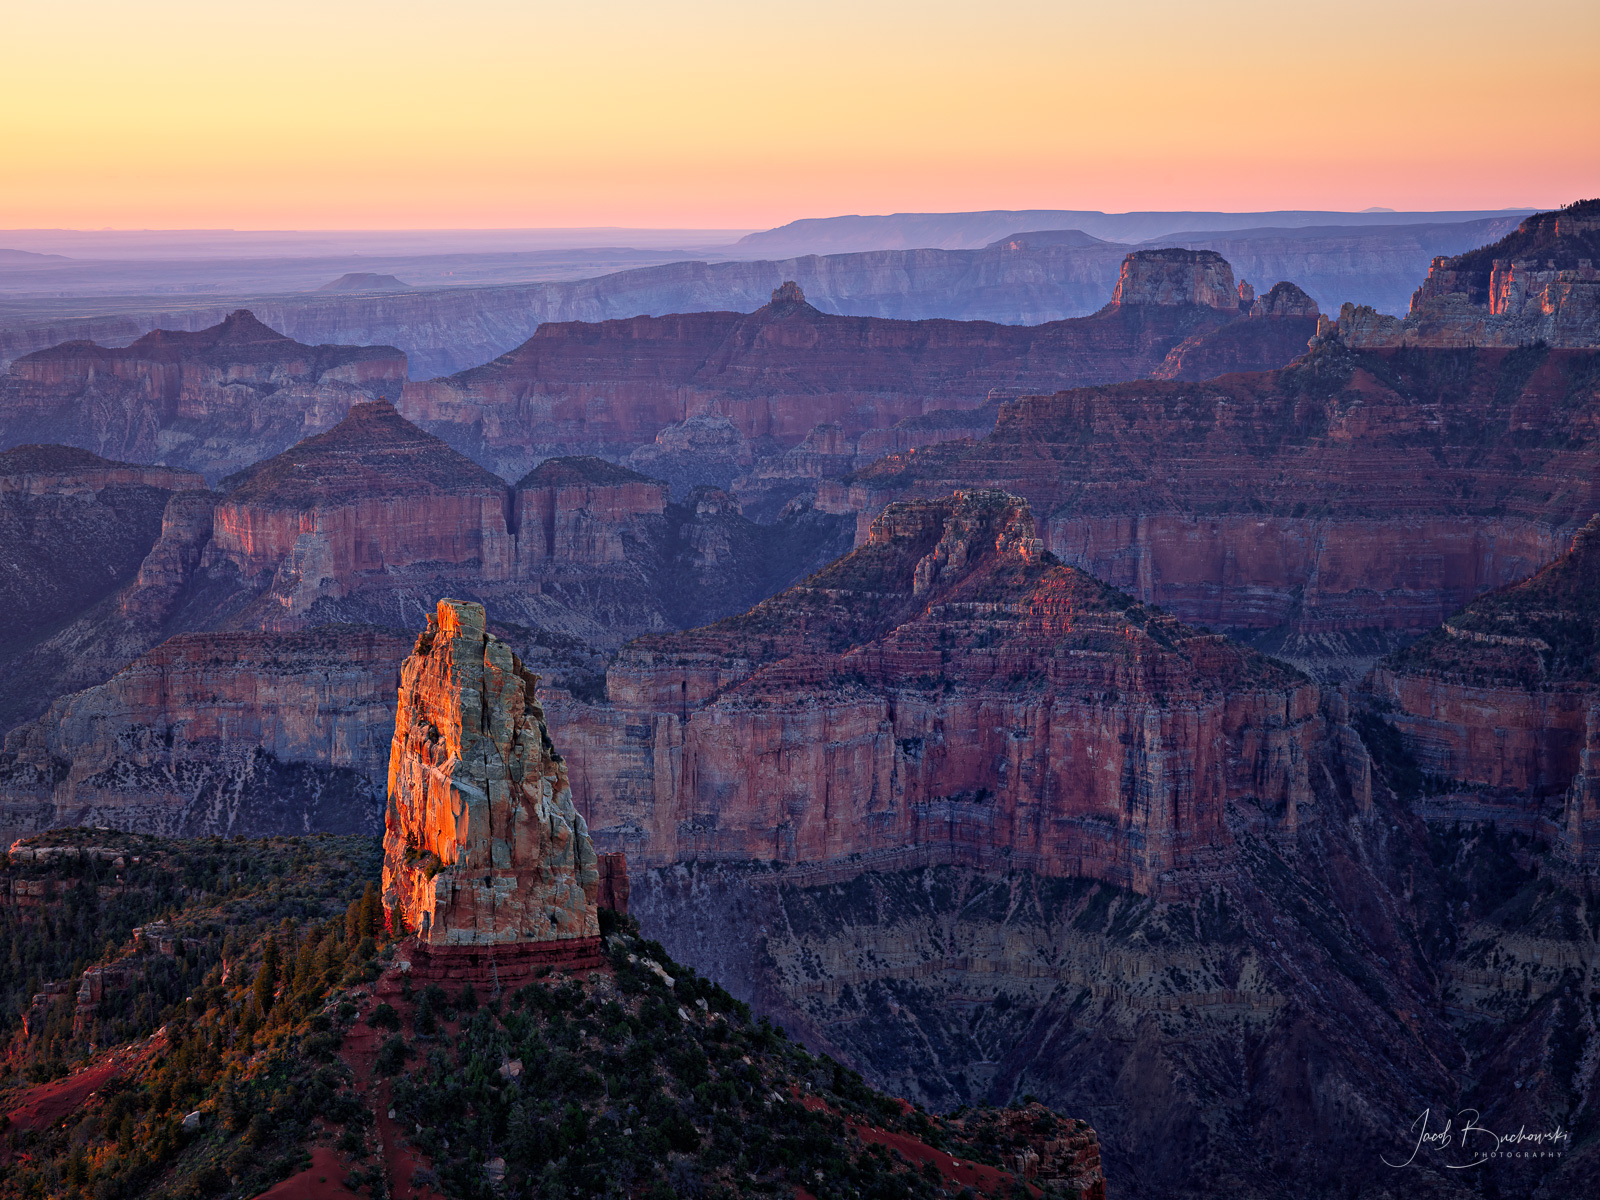 Point Imperial, Mount Hayden, Grand Canyon, Grand Canyon National Park, Arizona, sunrise, photo